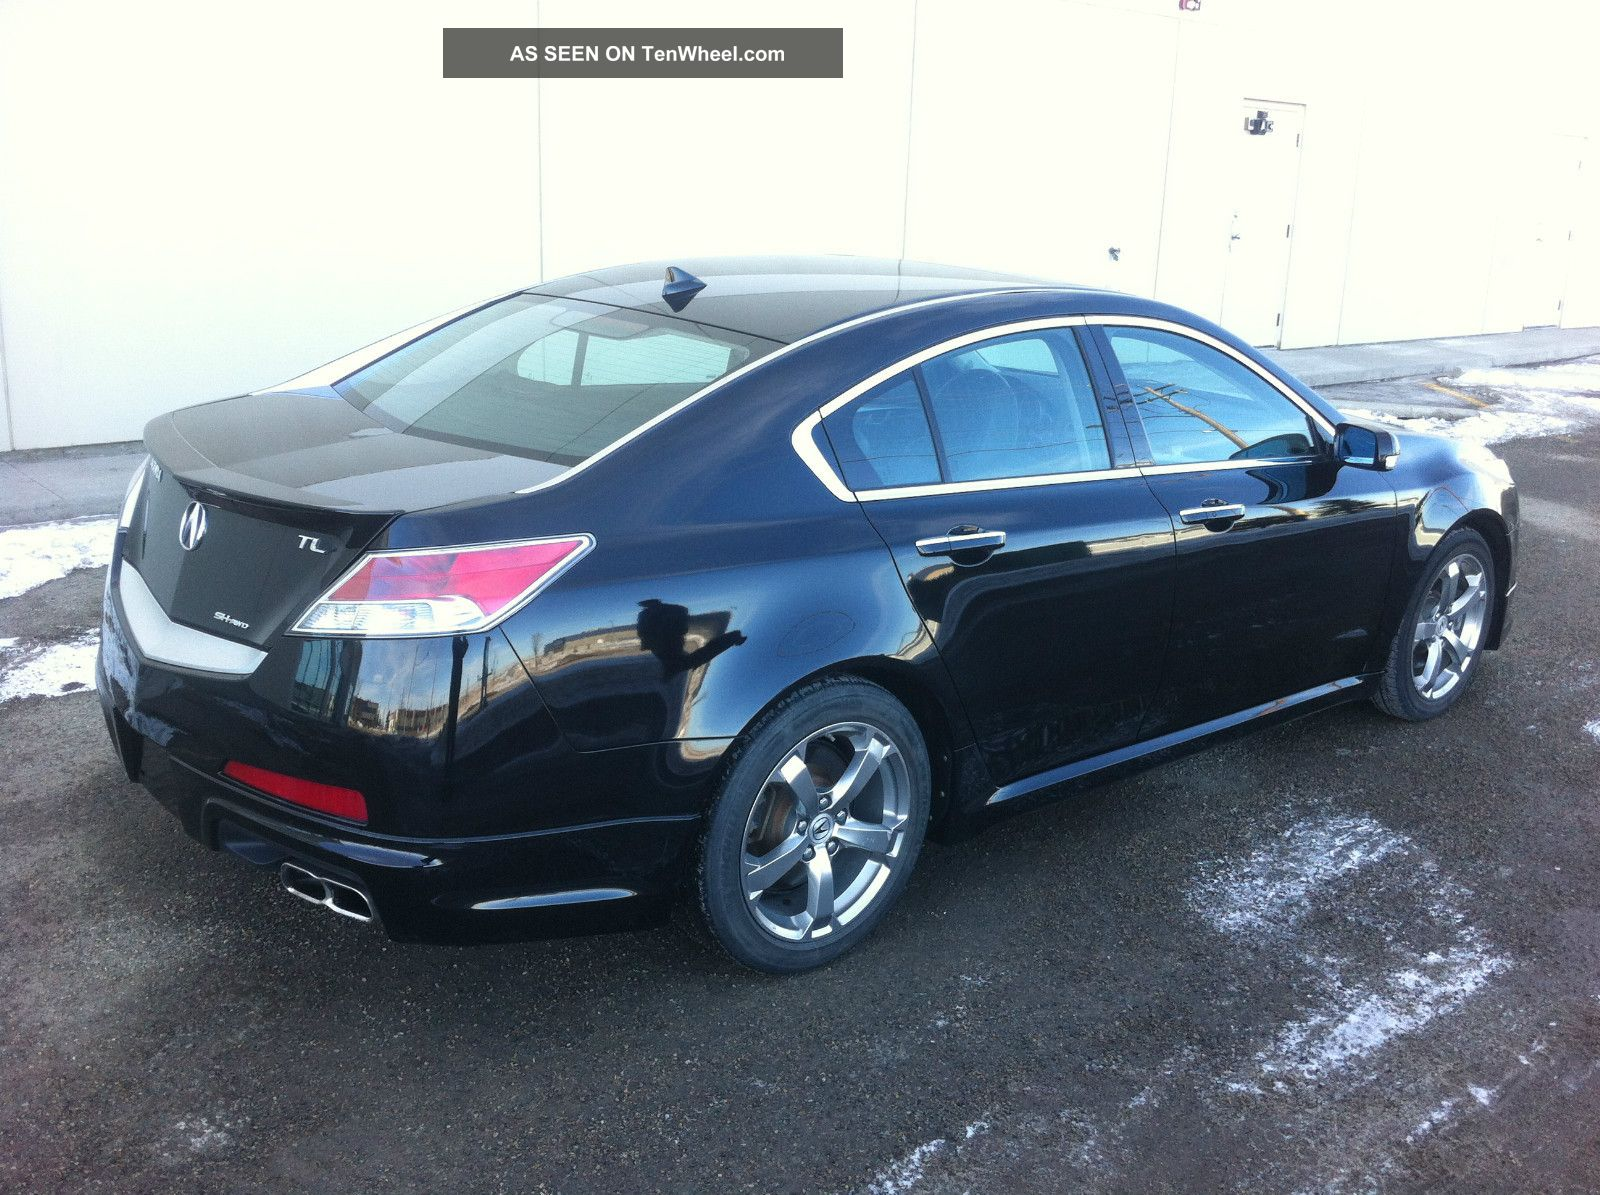 moreover likewise in addition together with also additionally 2009 acura tl  sh awd sedan 4 door